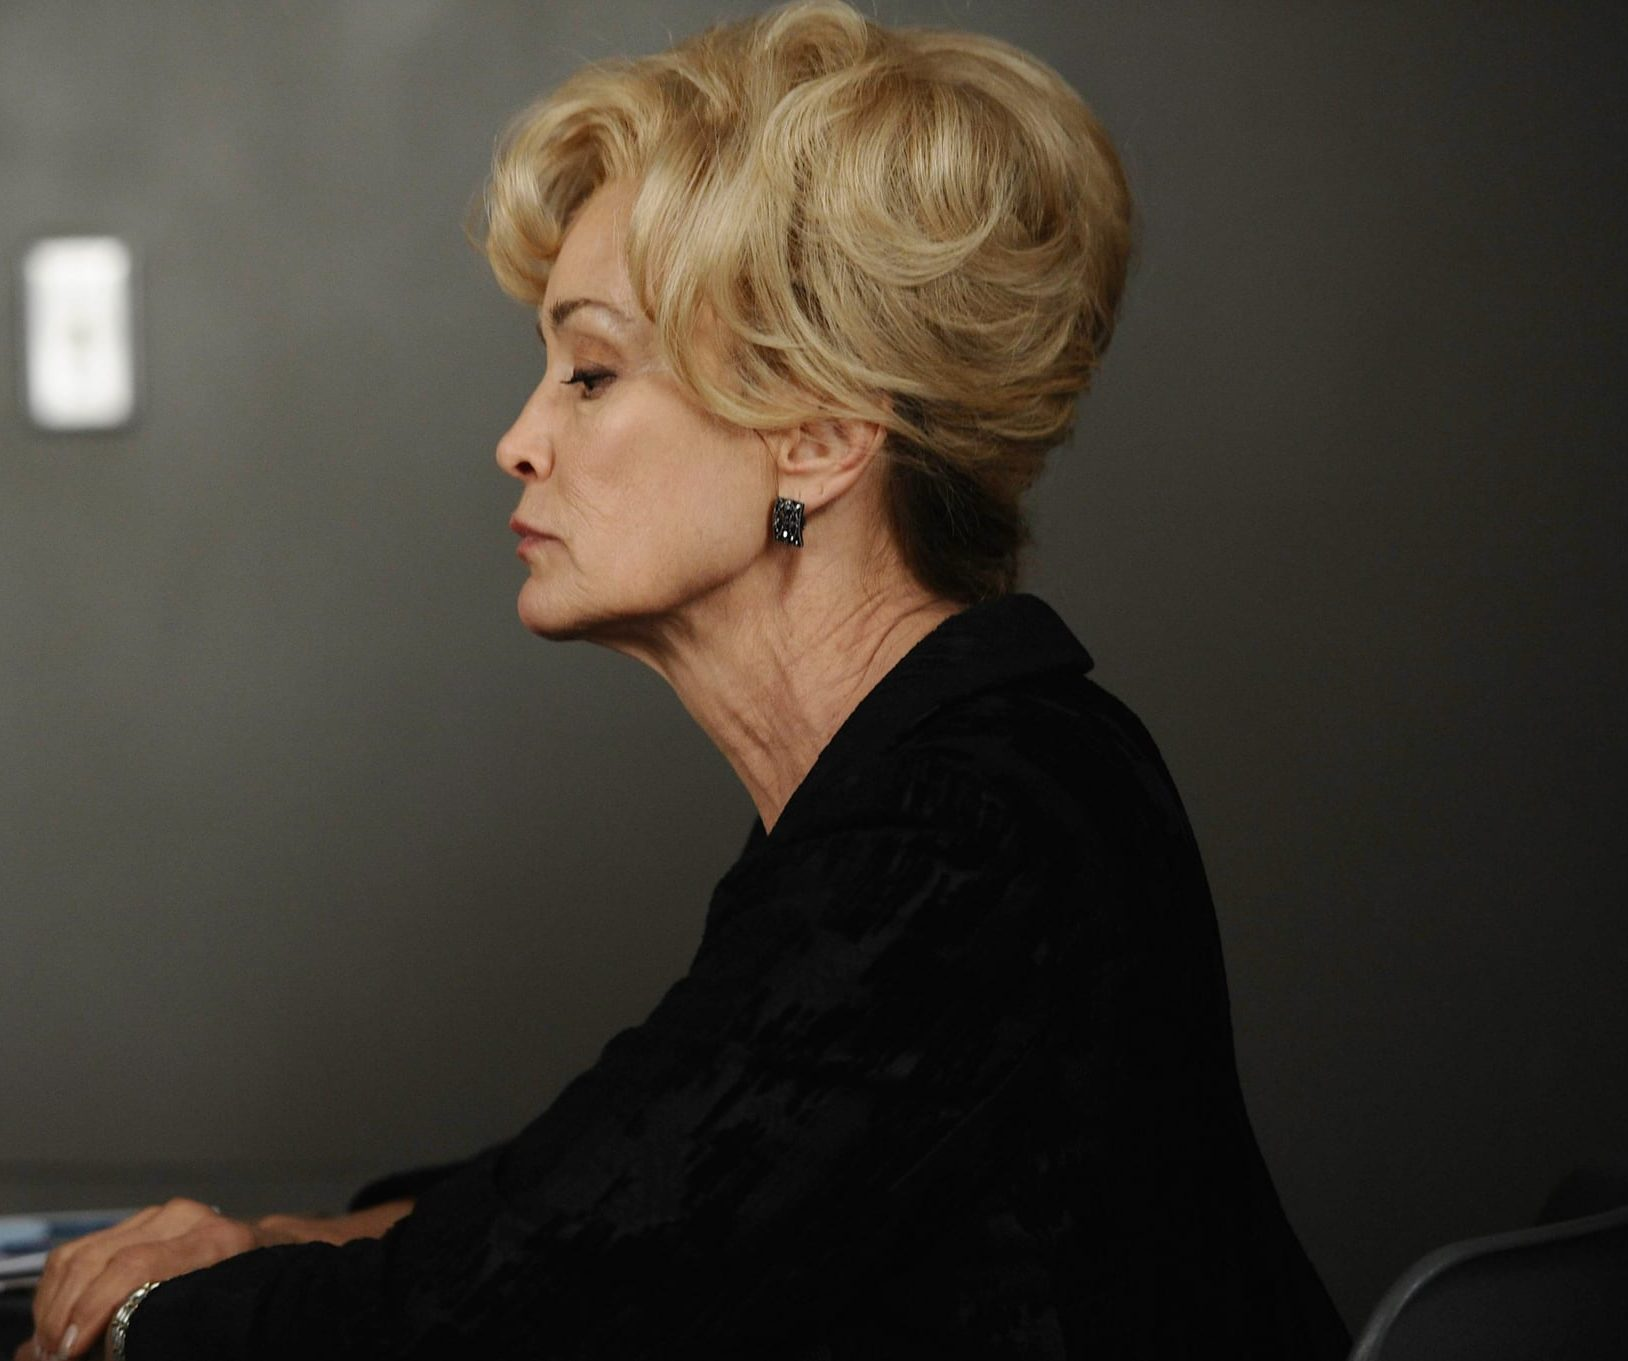 tmp WcbcNh 01f4d26571ffac12 TCDAMHO EC046 2 e1620983360824 20 Things You Never Knew About Jessica Lange